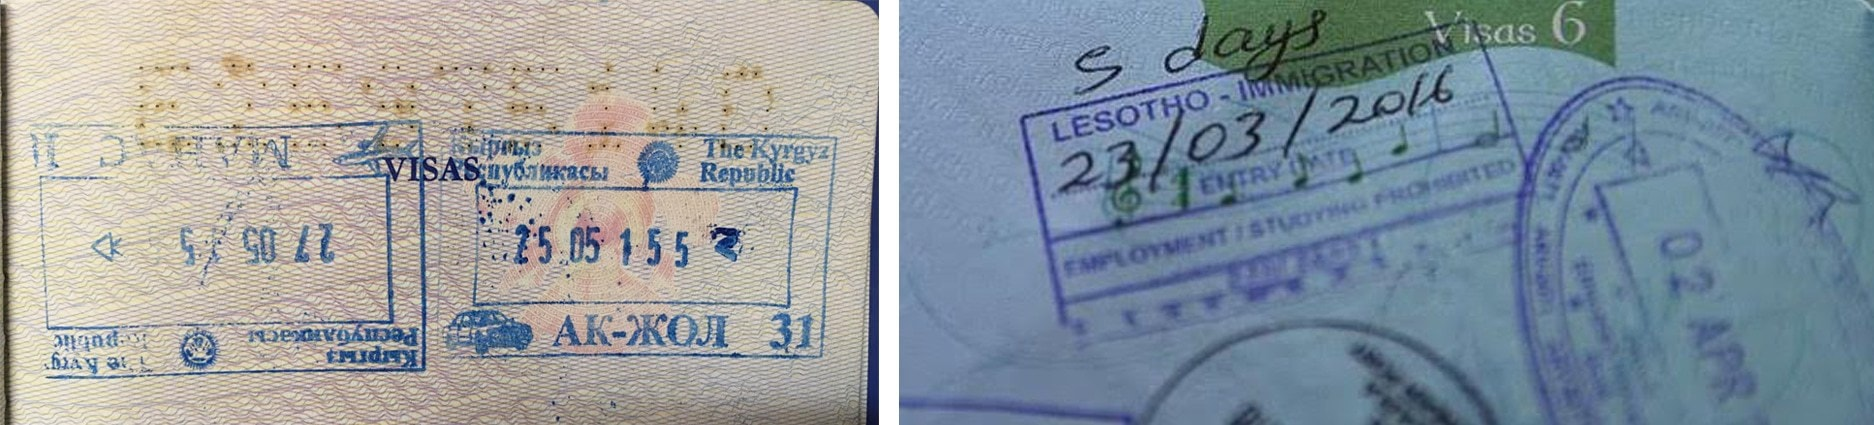 Passport stamp for Kyrgyzstan and Lesotho